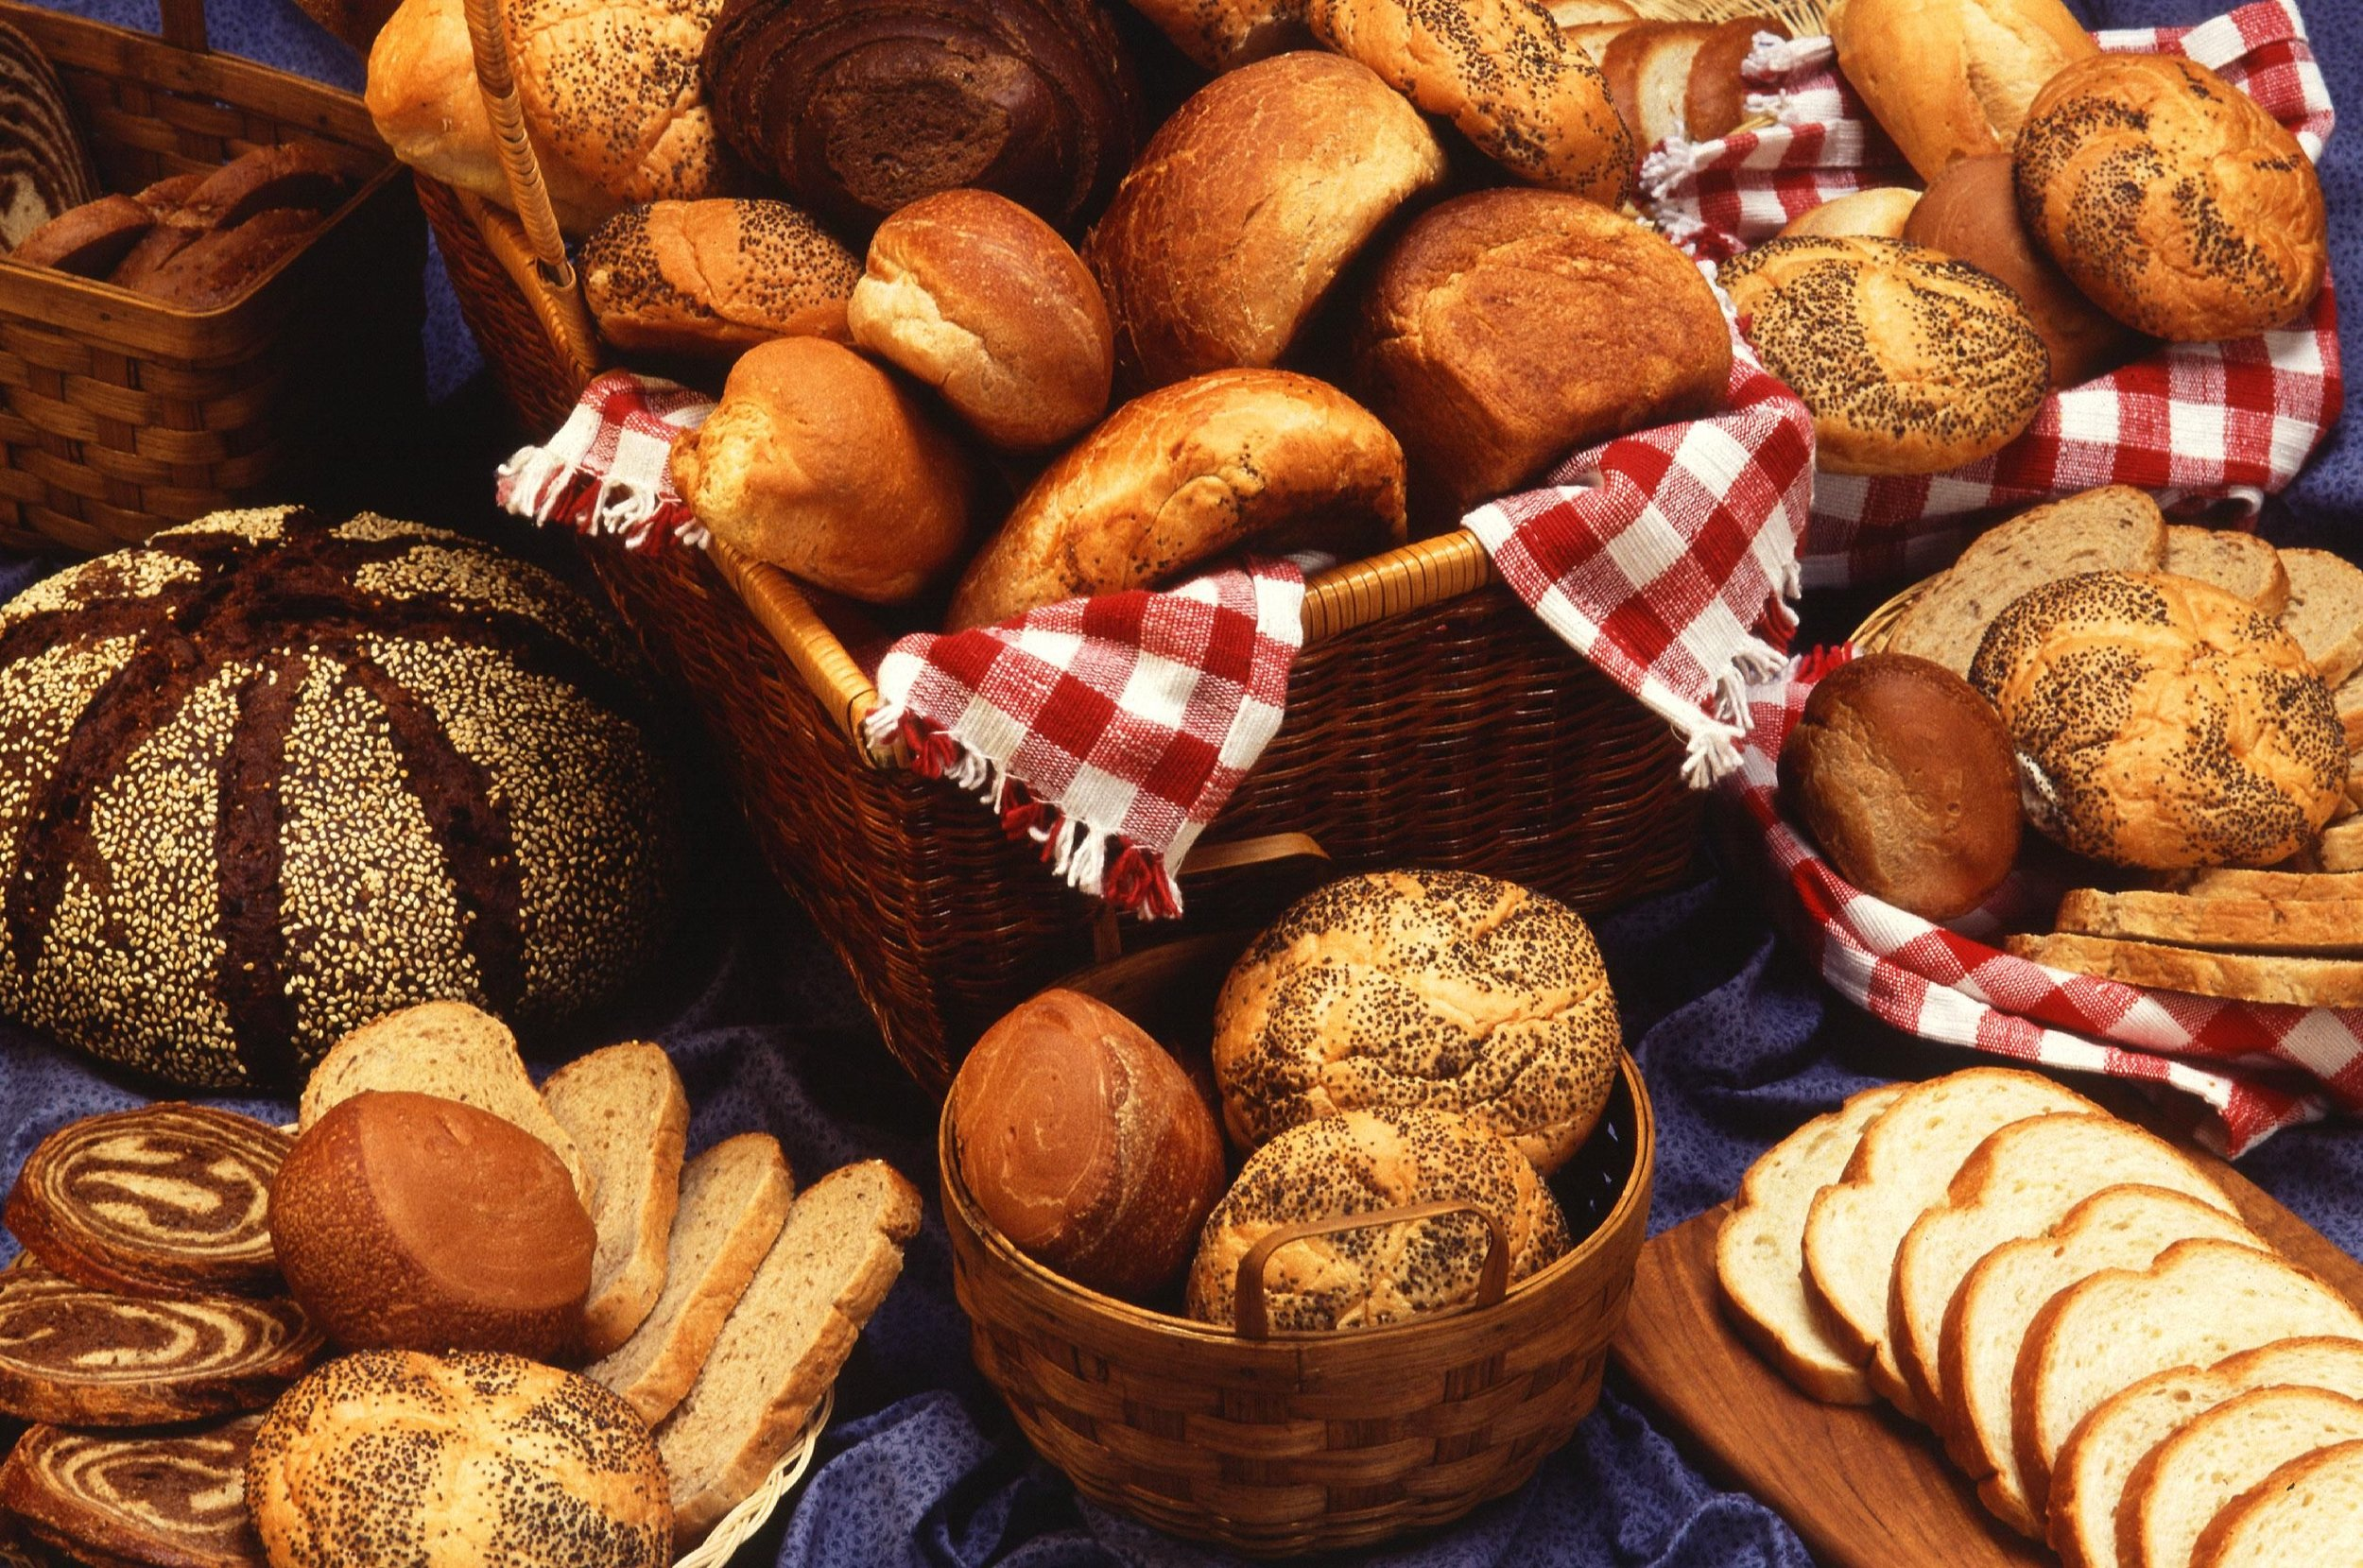 Old Fashioned bread,rolls & croissants - Meeting Your